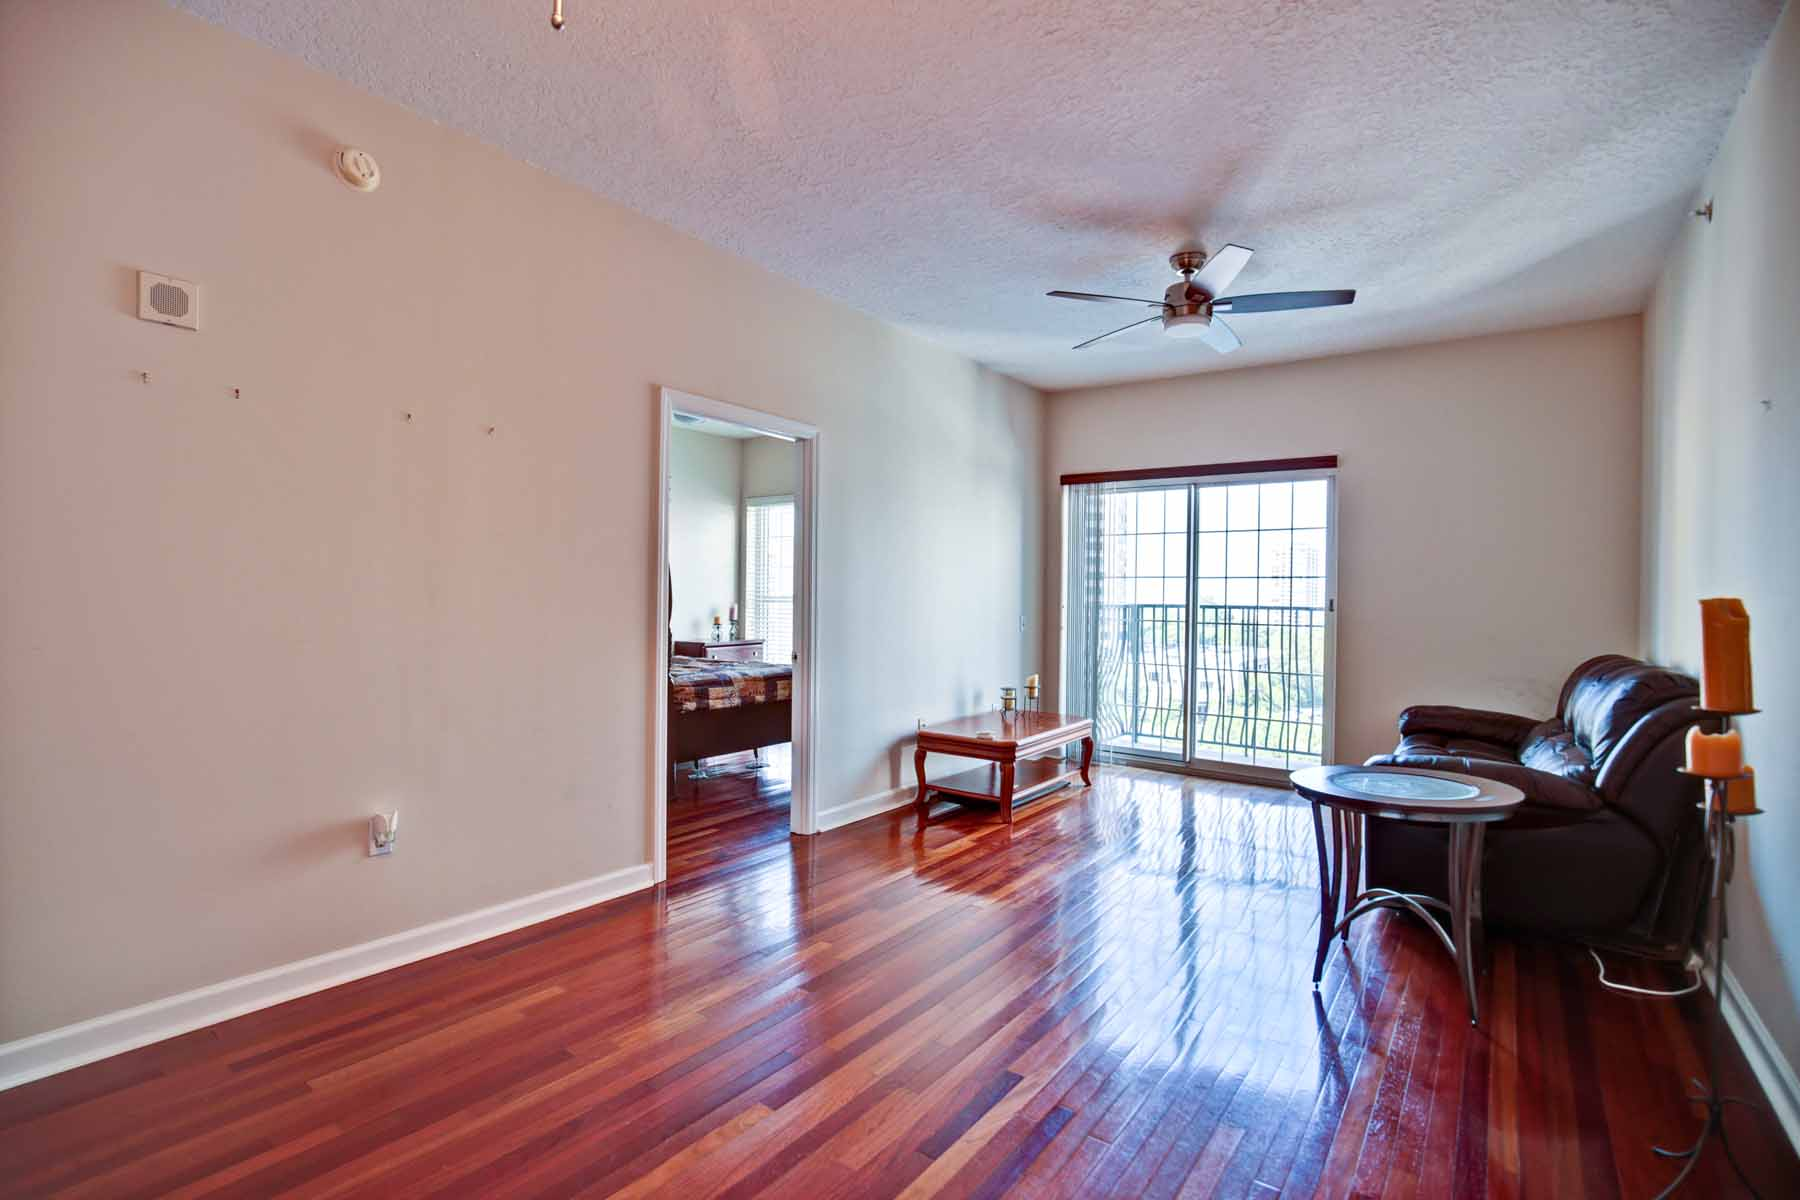 Condominio por un Venta en Gorgeous One Bedroom Condo in the Heart of Midtown! 195 14th Street NE Unit 1204 Atlanta, Georgia, 30309 Estados Unidos